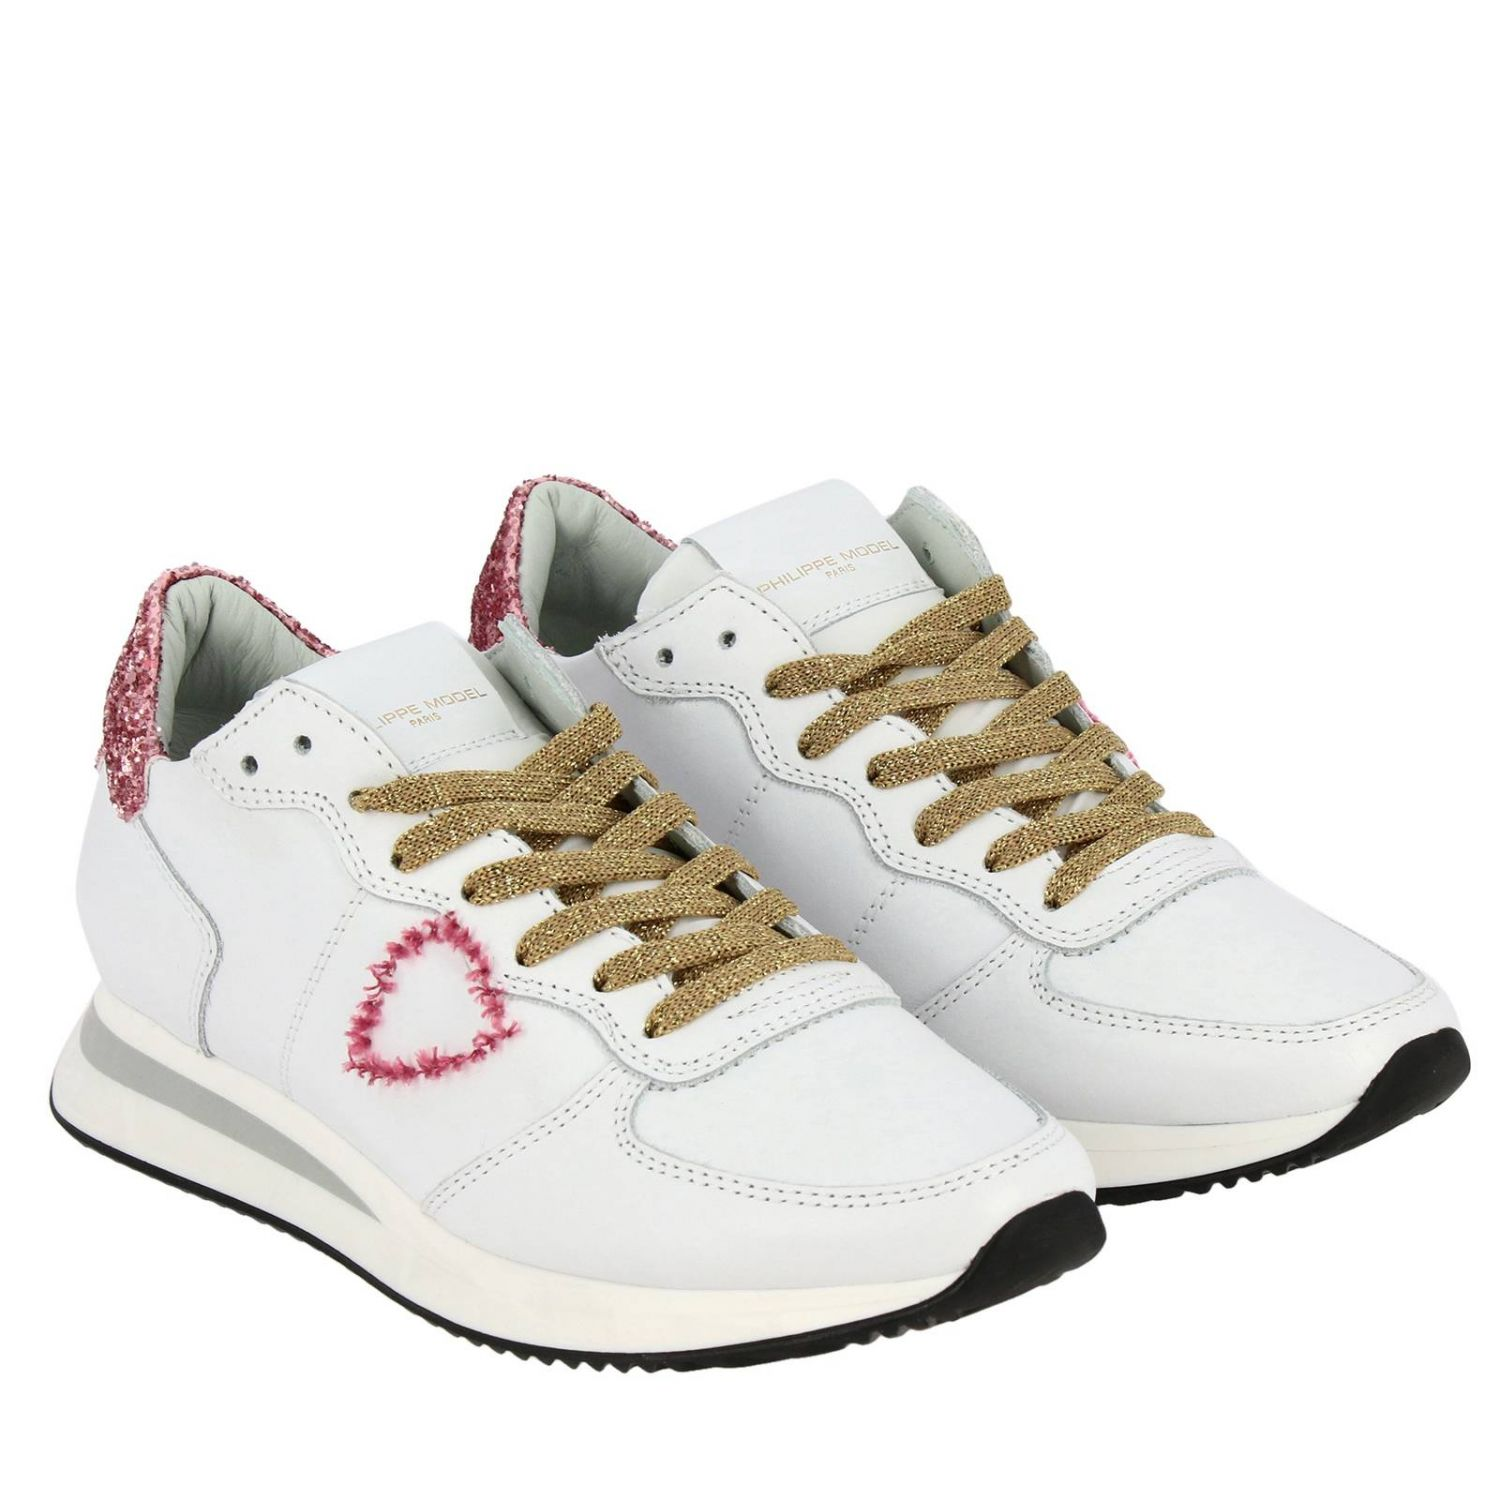 Shoes women Philippe Model white 2